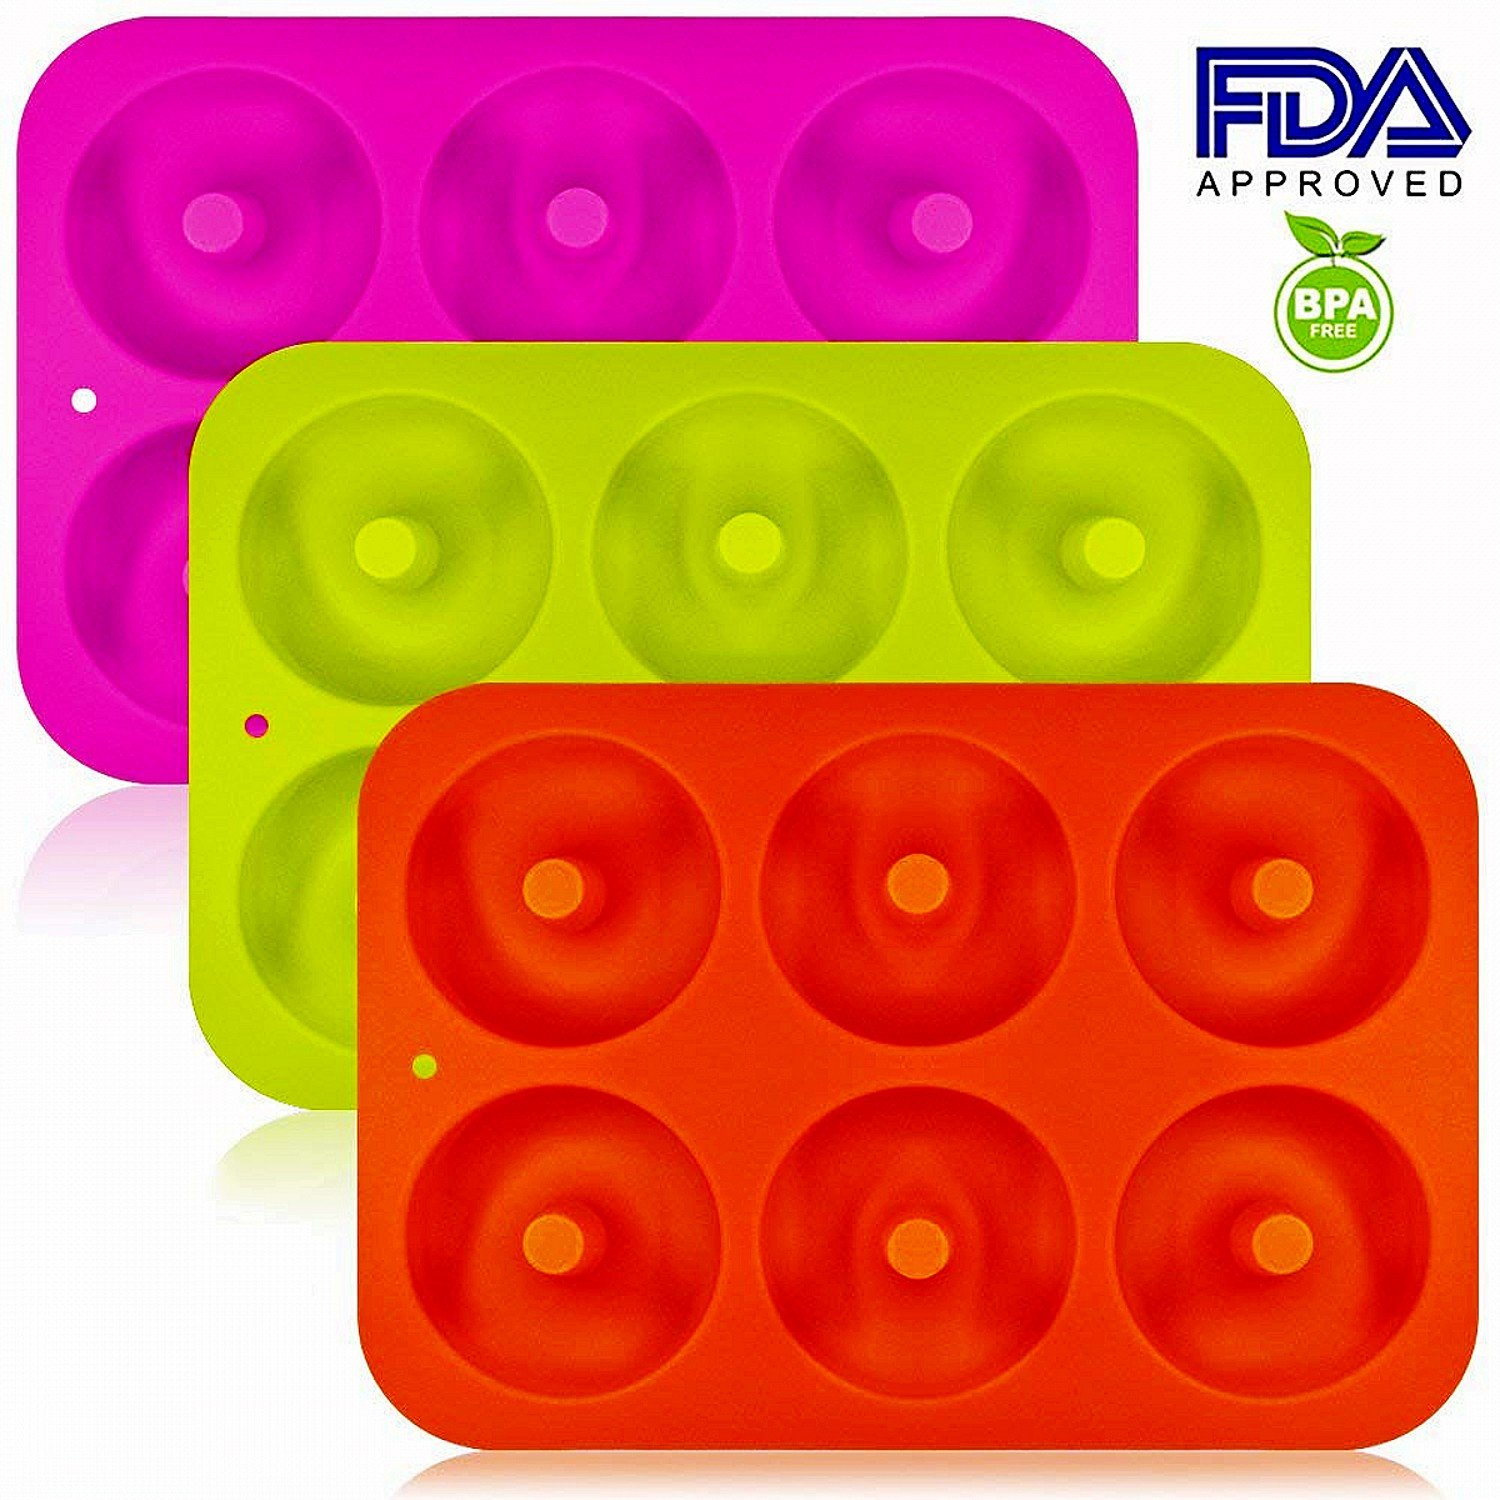 OKSANO 3 Pack Donut Molds, Silicon Cake Mold 6 Cavity Non-Stick Safe Baking Tray Maker Pan Heat Resistance for Cake Biscuit Bagels Muffins-Orange, Rose Red, Green by OKSANO (Image #2)